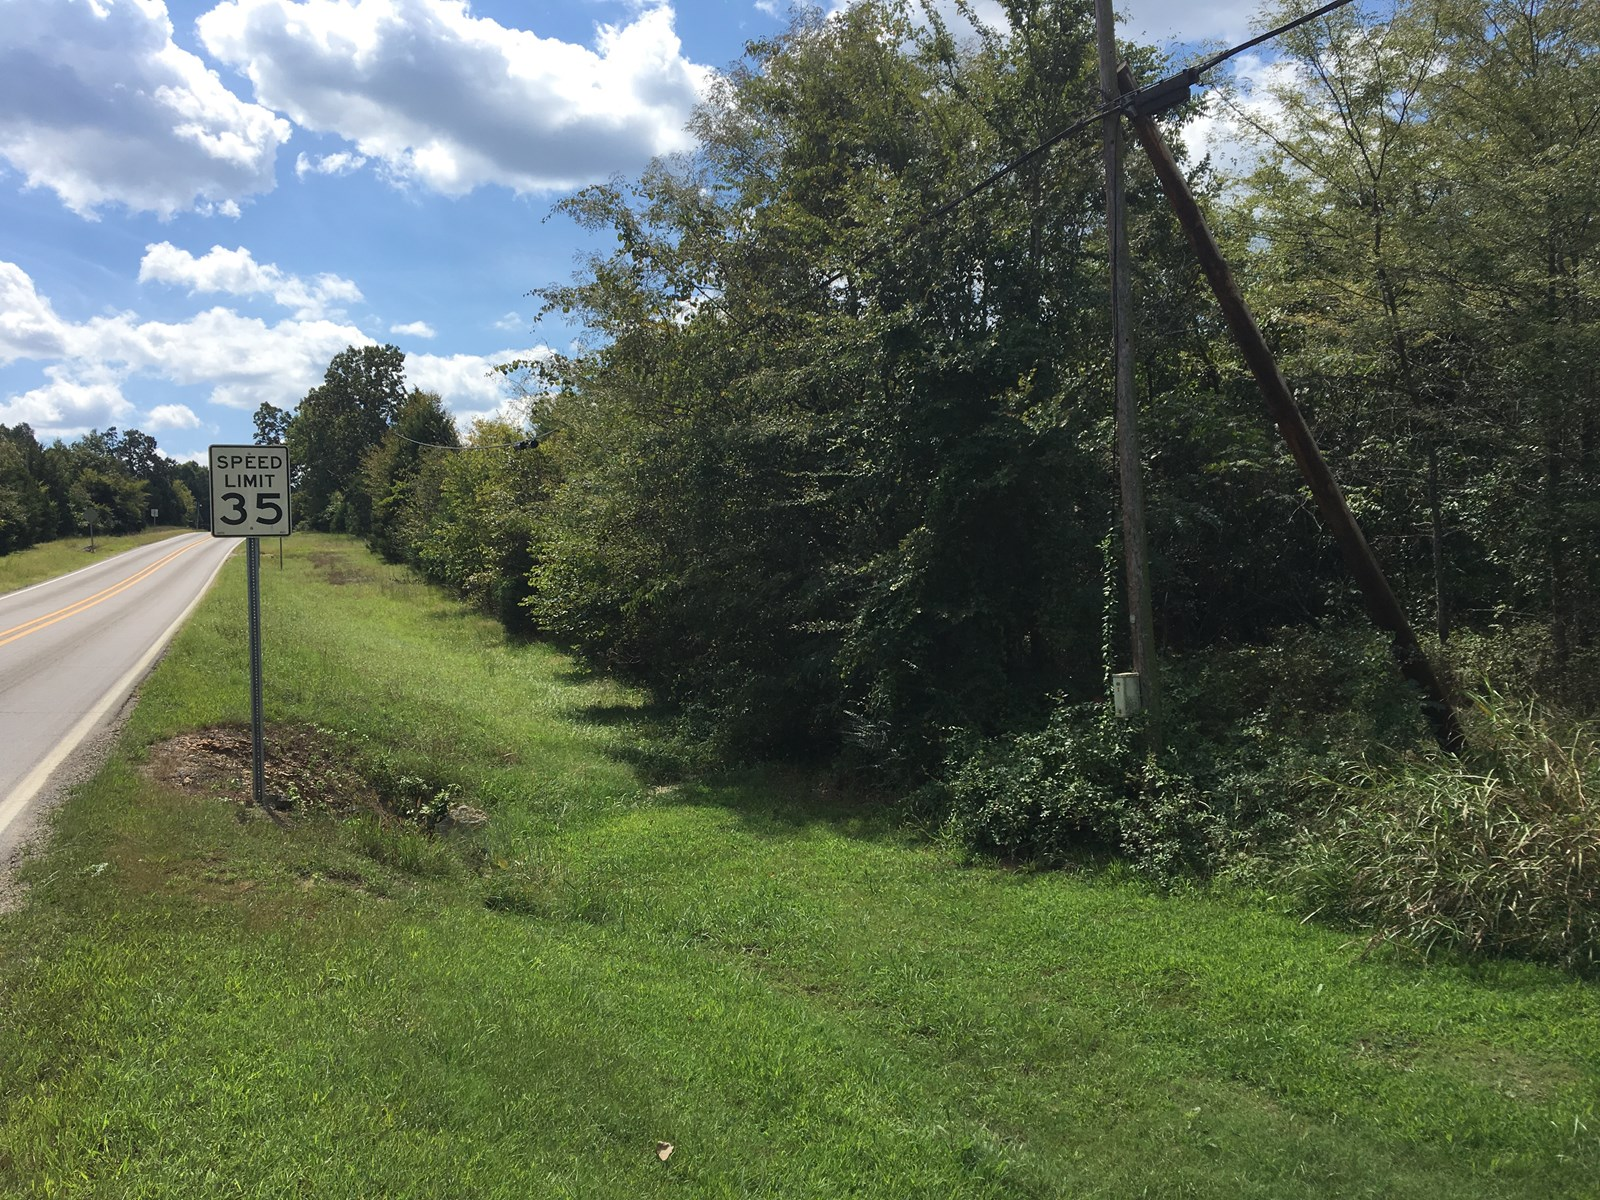 Commercial Lot with Highway Frontage, Land in Maynard, Ark.